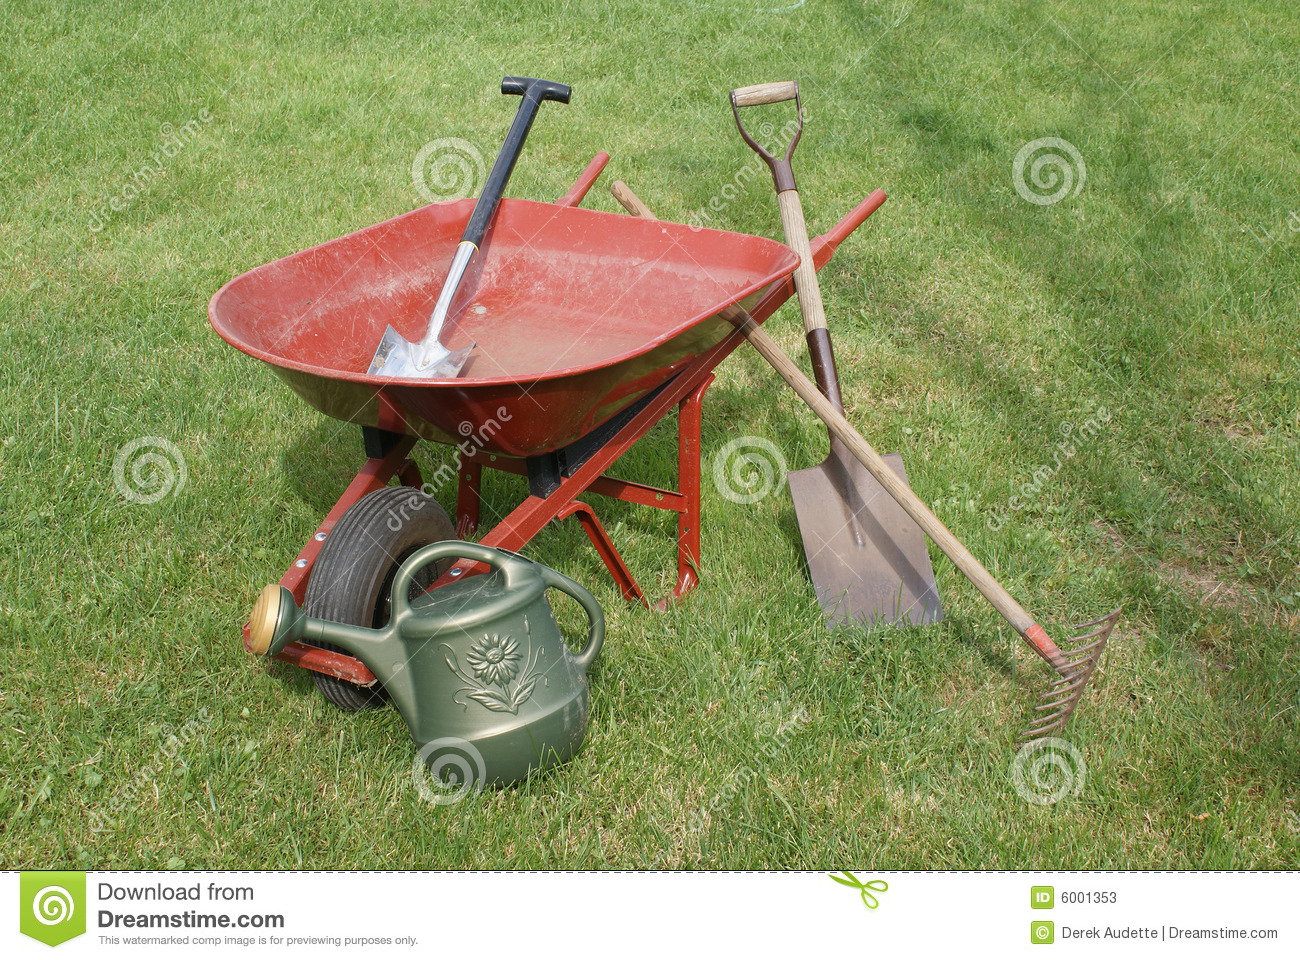 Gardening tools and equipment stock image image 6001353 for Tools and equipment in planting